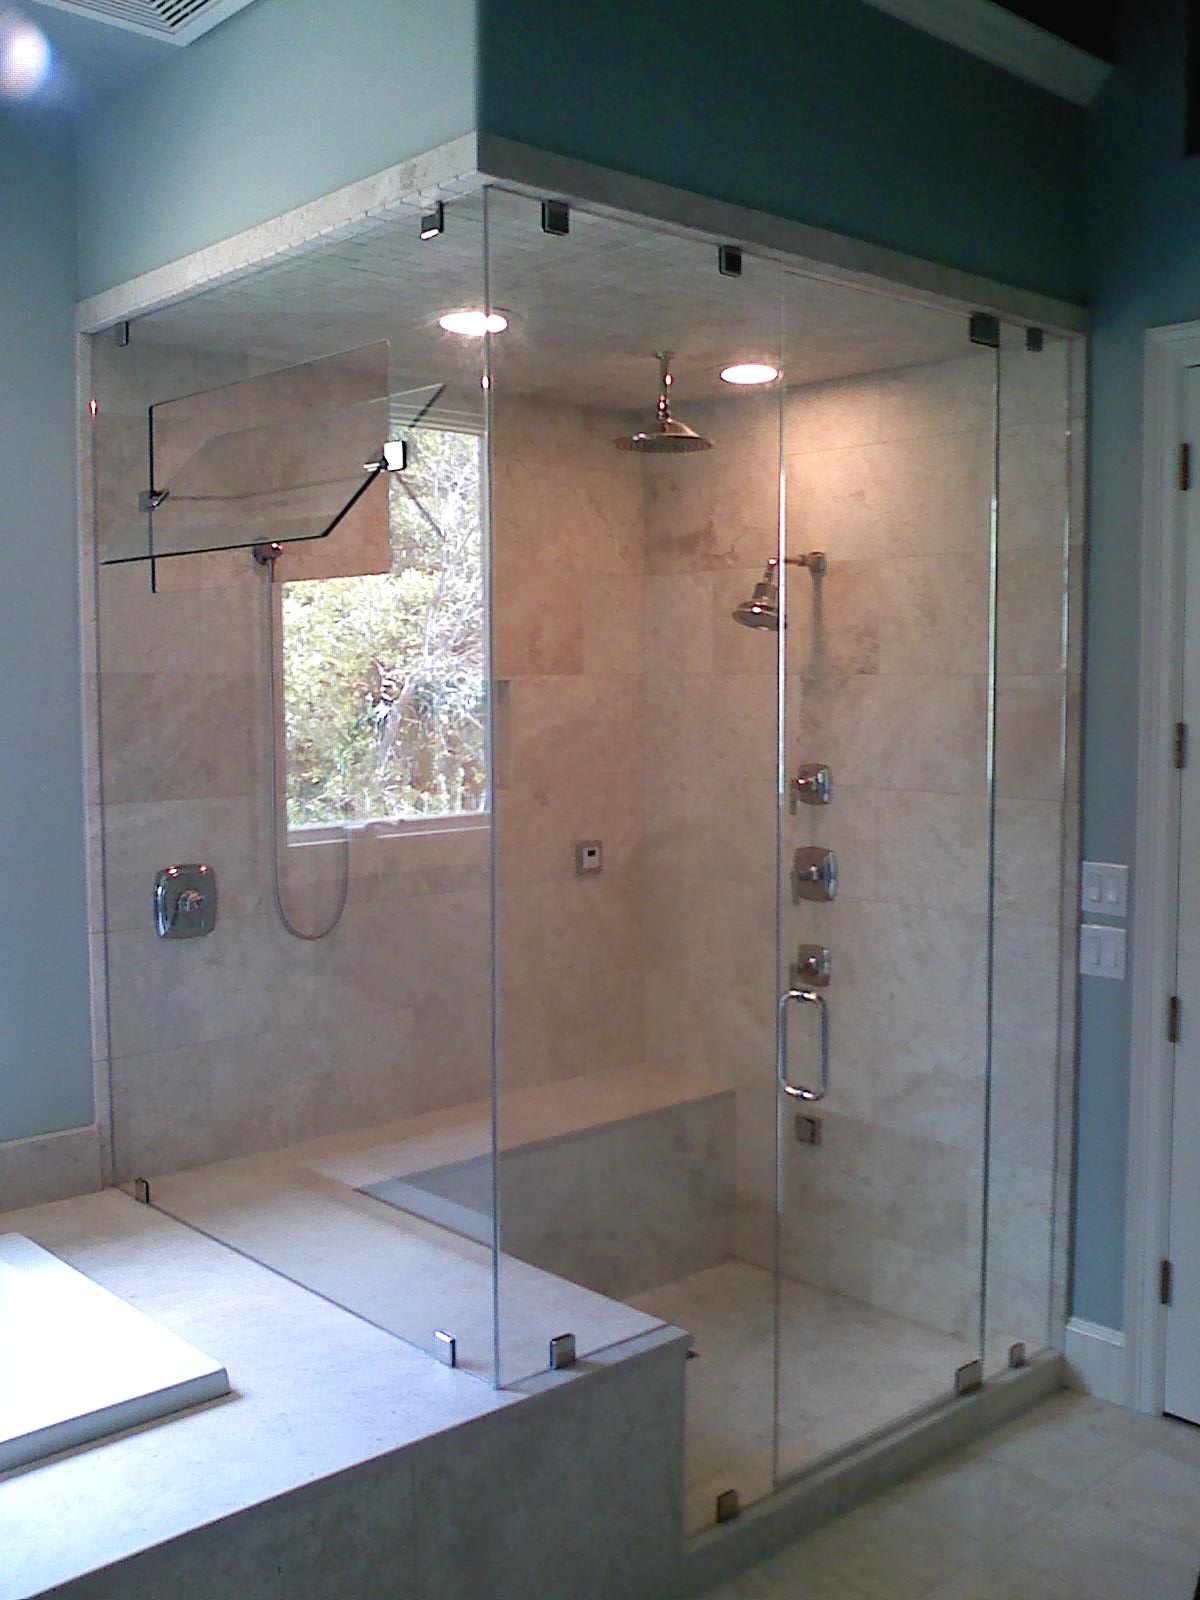 Custom shower doors mirrors the glass shop showers shower3551 unit with in panel steam vent binswanger glass 83 austin cardinalshowereurote02 cardinalshowerheavyglass10 eventelaan Images